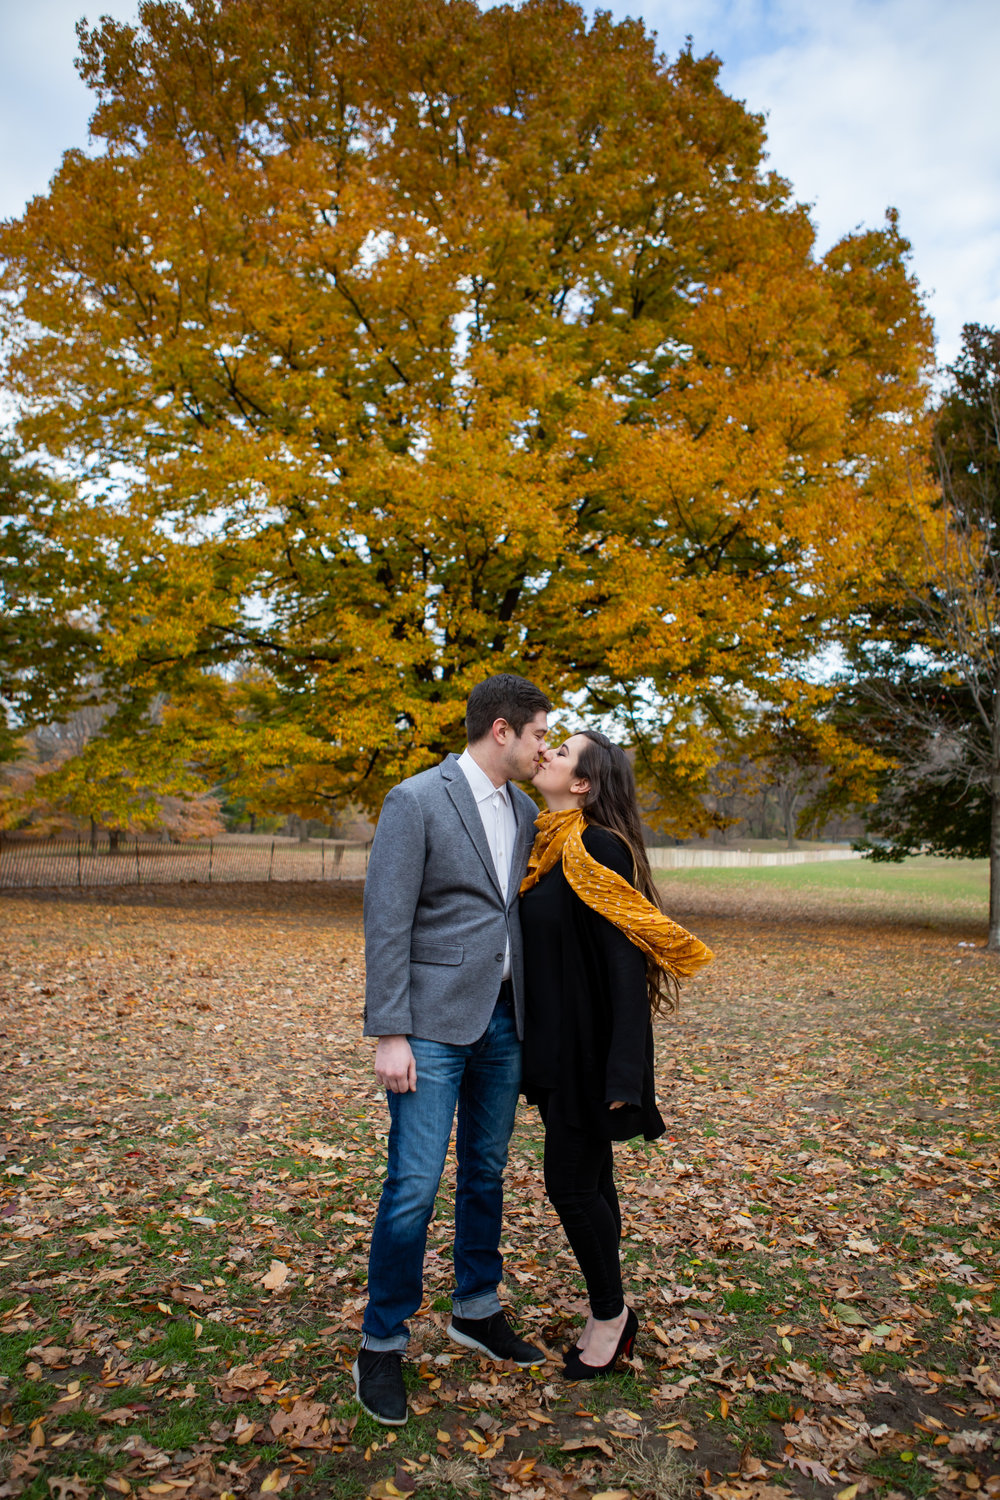 Kate-Alison-Photography-Prospect-Park-Brooklyn-Engagement-Session-Jenna-James-10.jpg